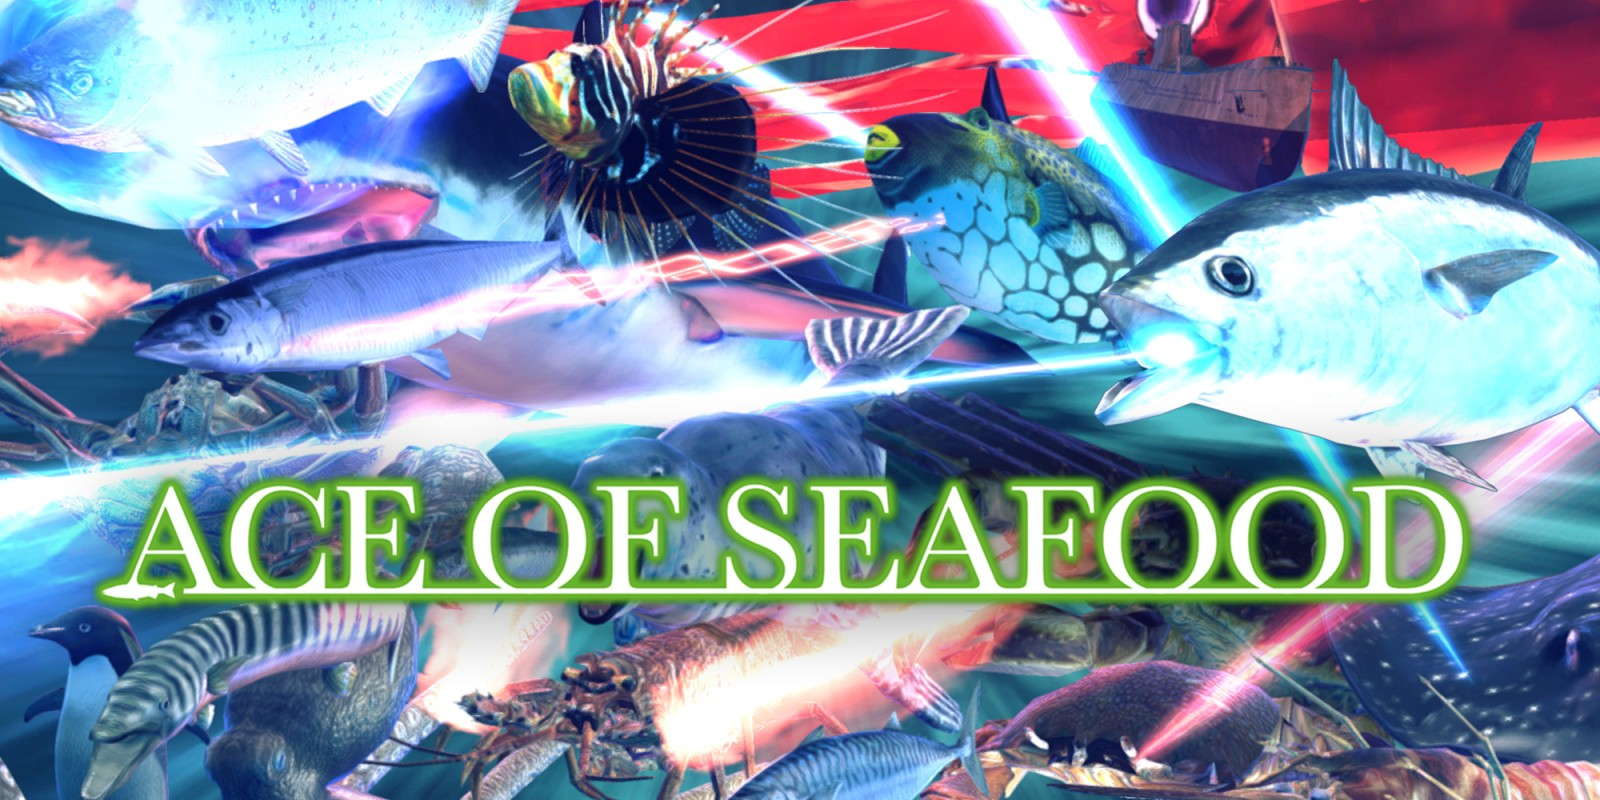 Ace of Seafood